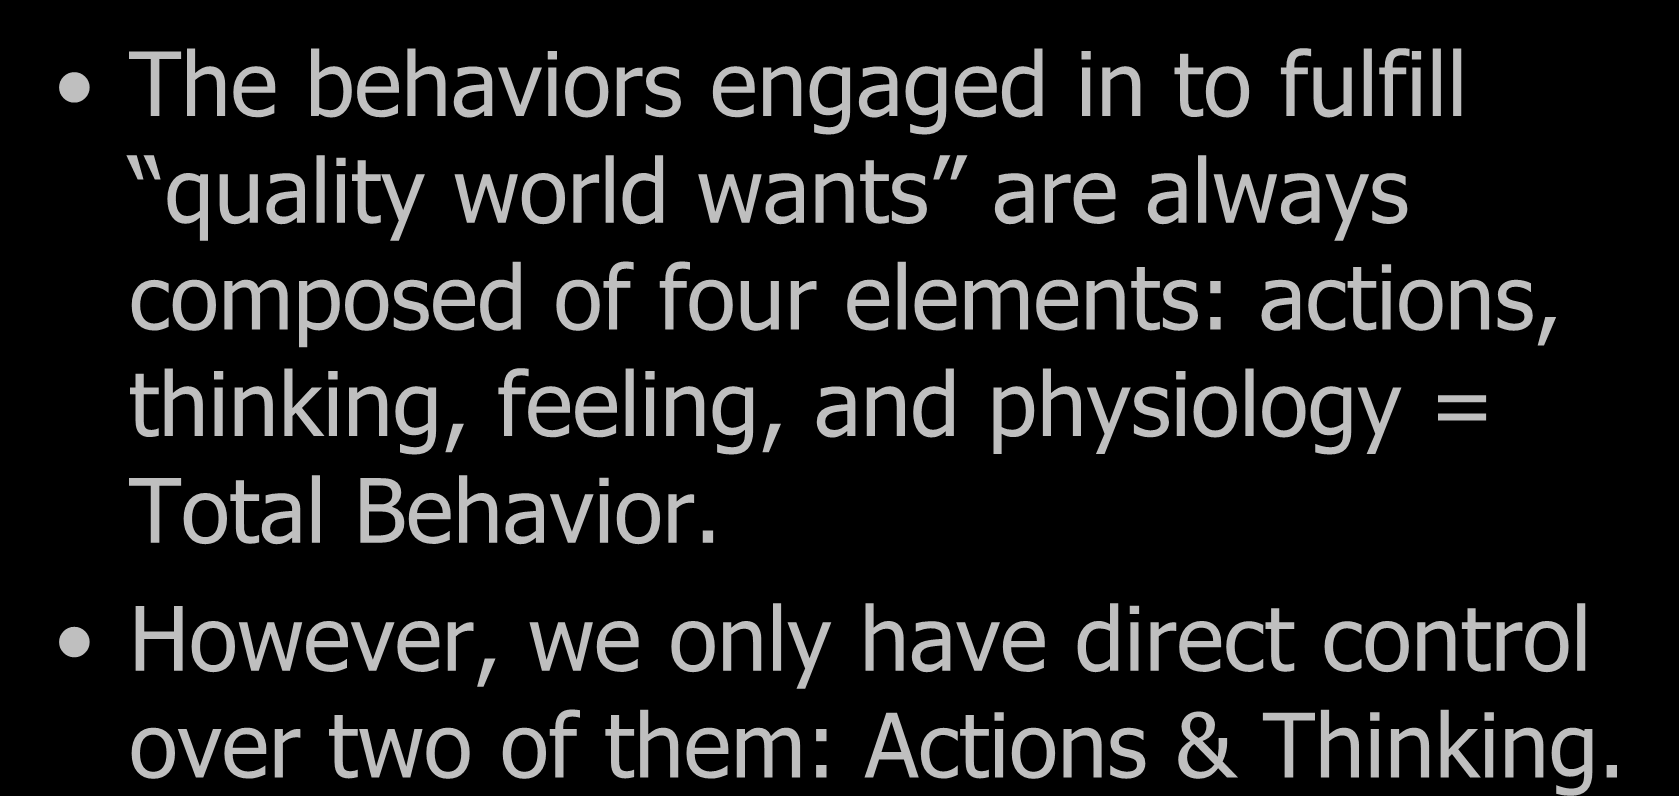 Choice Theory The behaviors engaged in to fulfill quality world wants are always composed of four elements: actions,